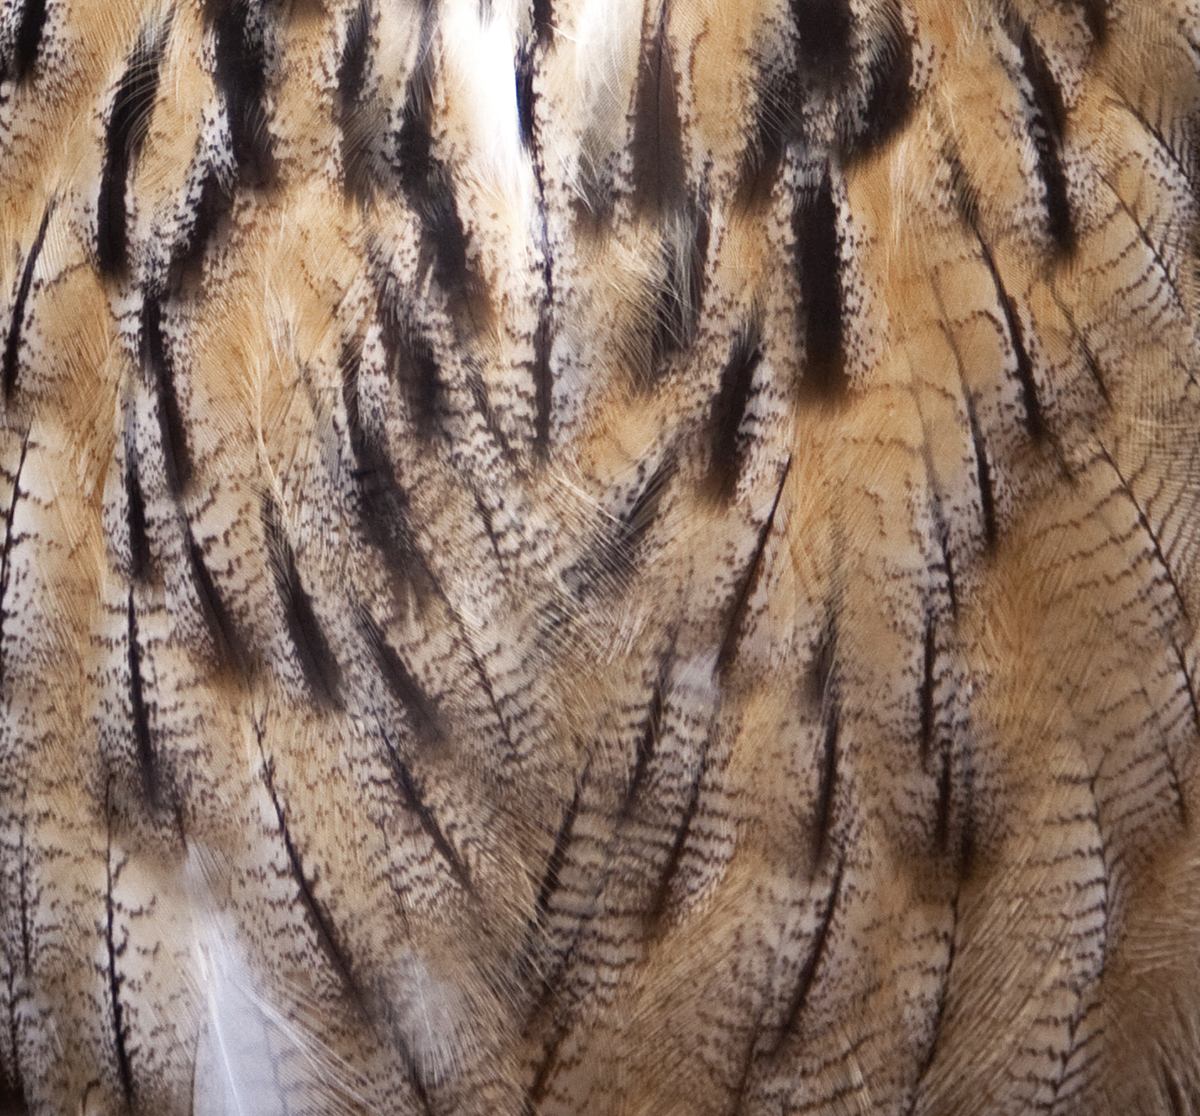 Feathers_(3974796232)